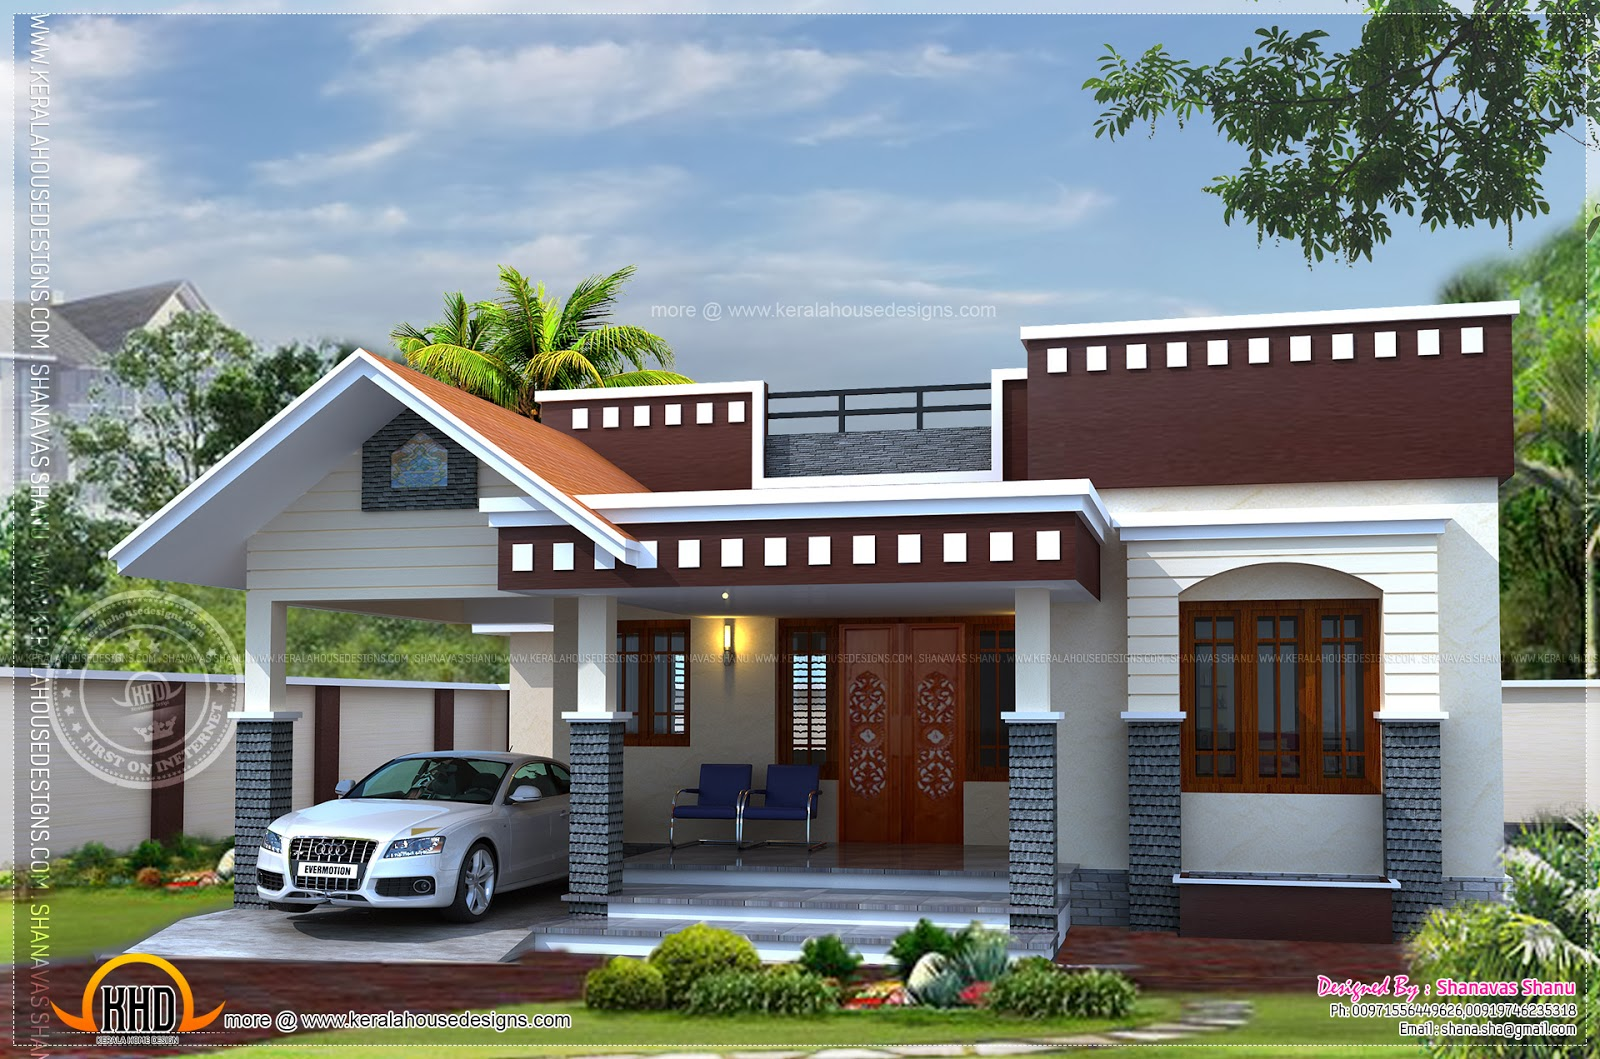 Home plan of small house kerala home design and floor plans for Small home images